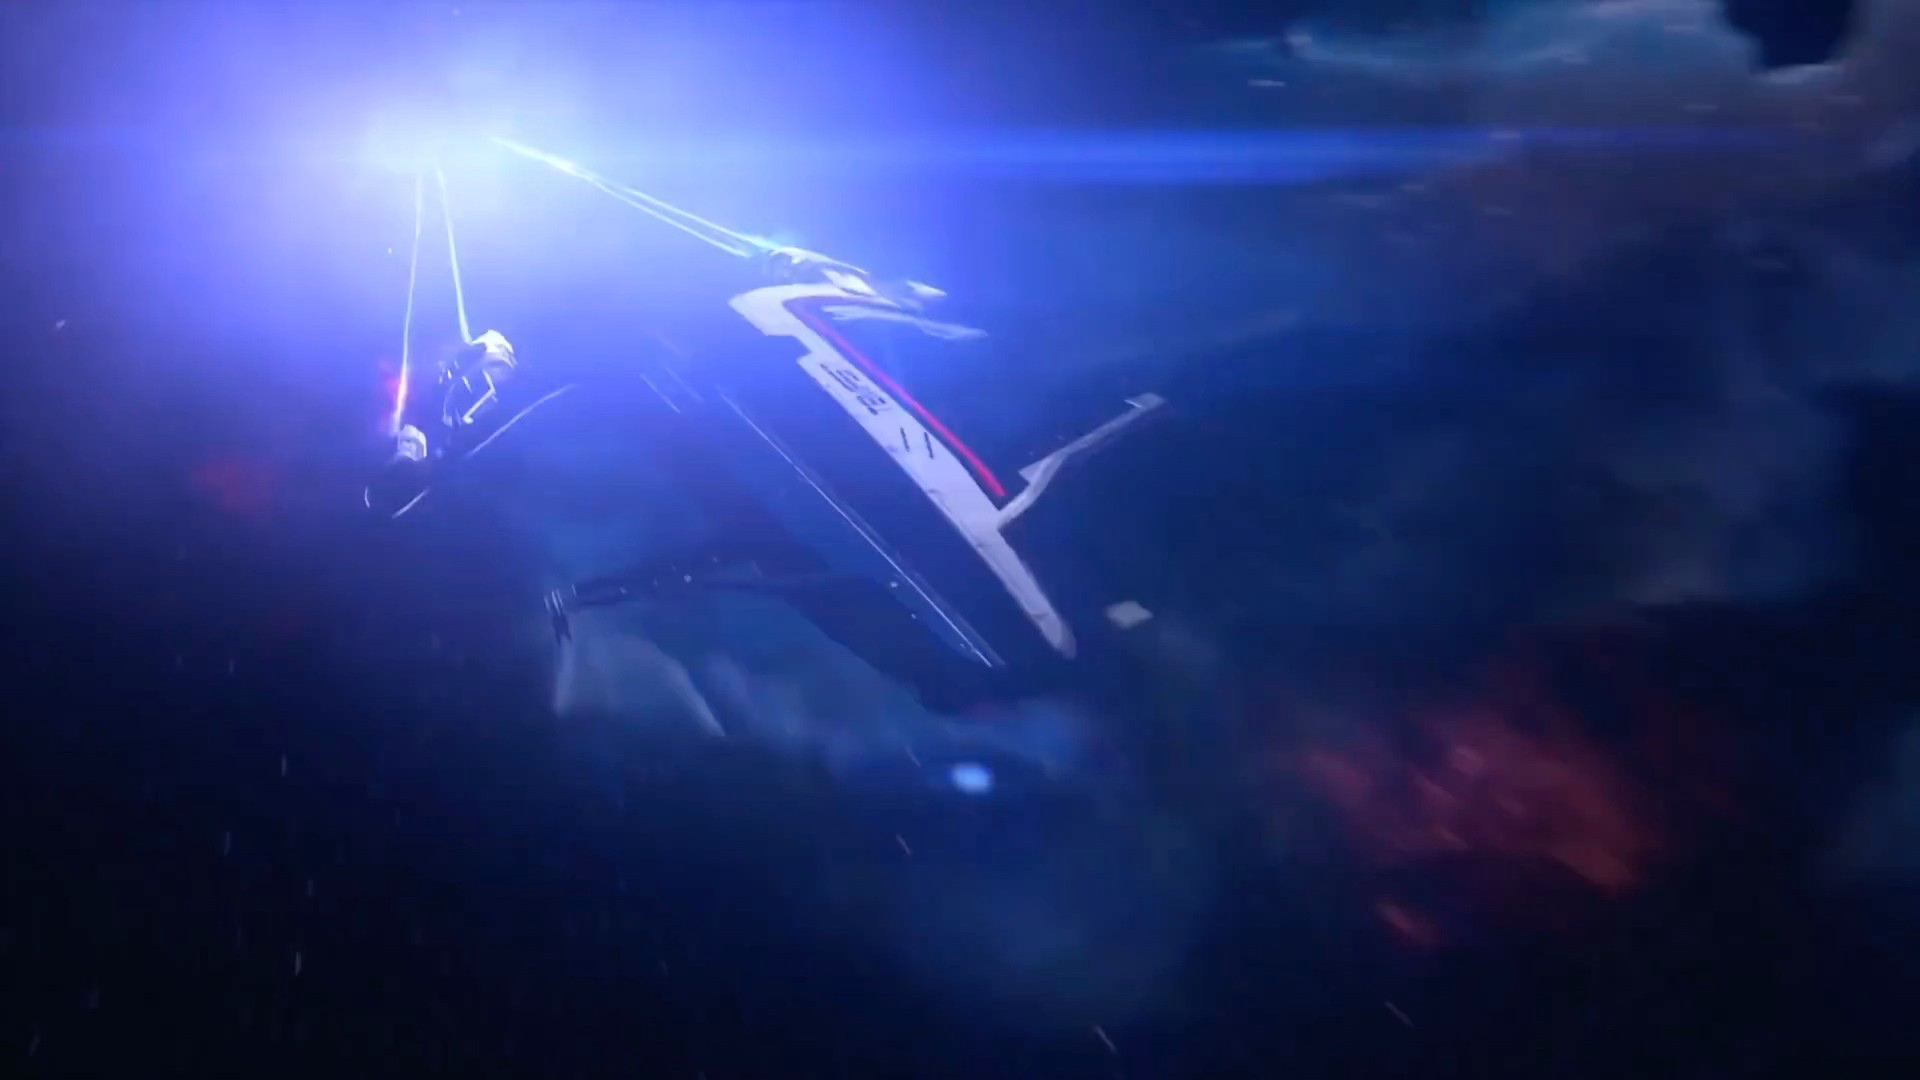 New Mass Effect Andromeda Video Reveals New Ship Mxdwn Games